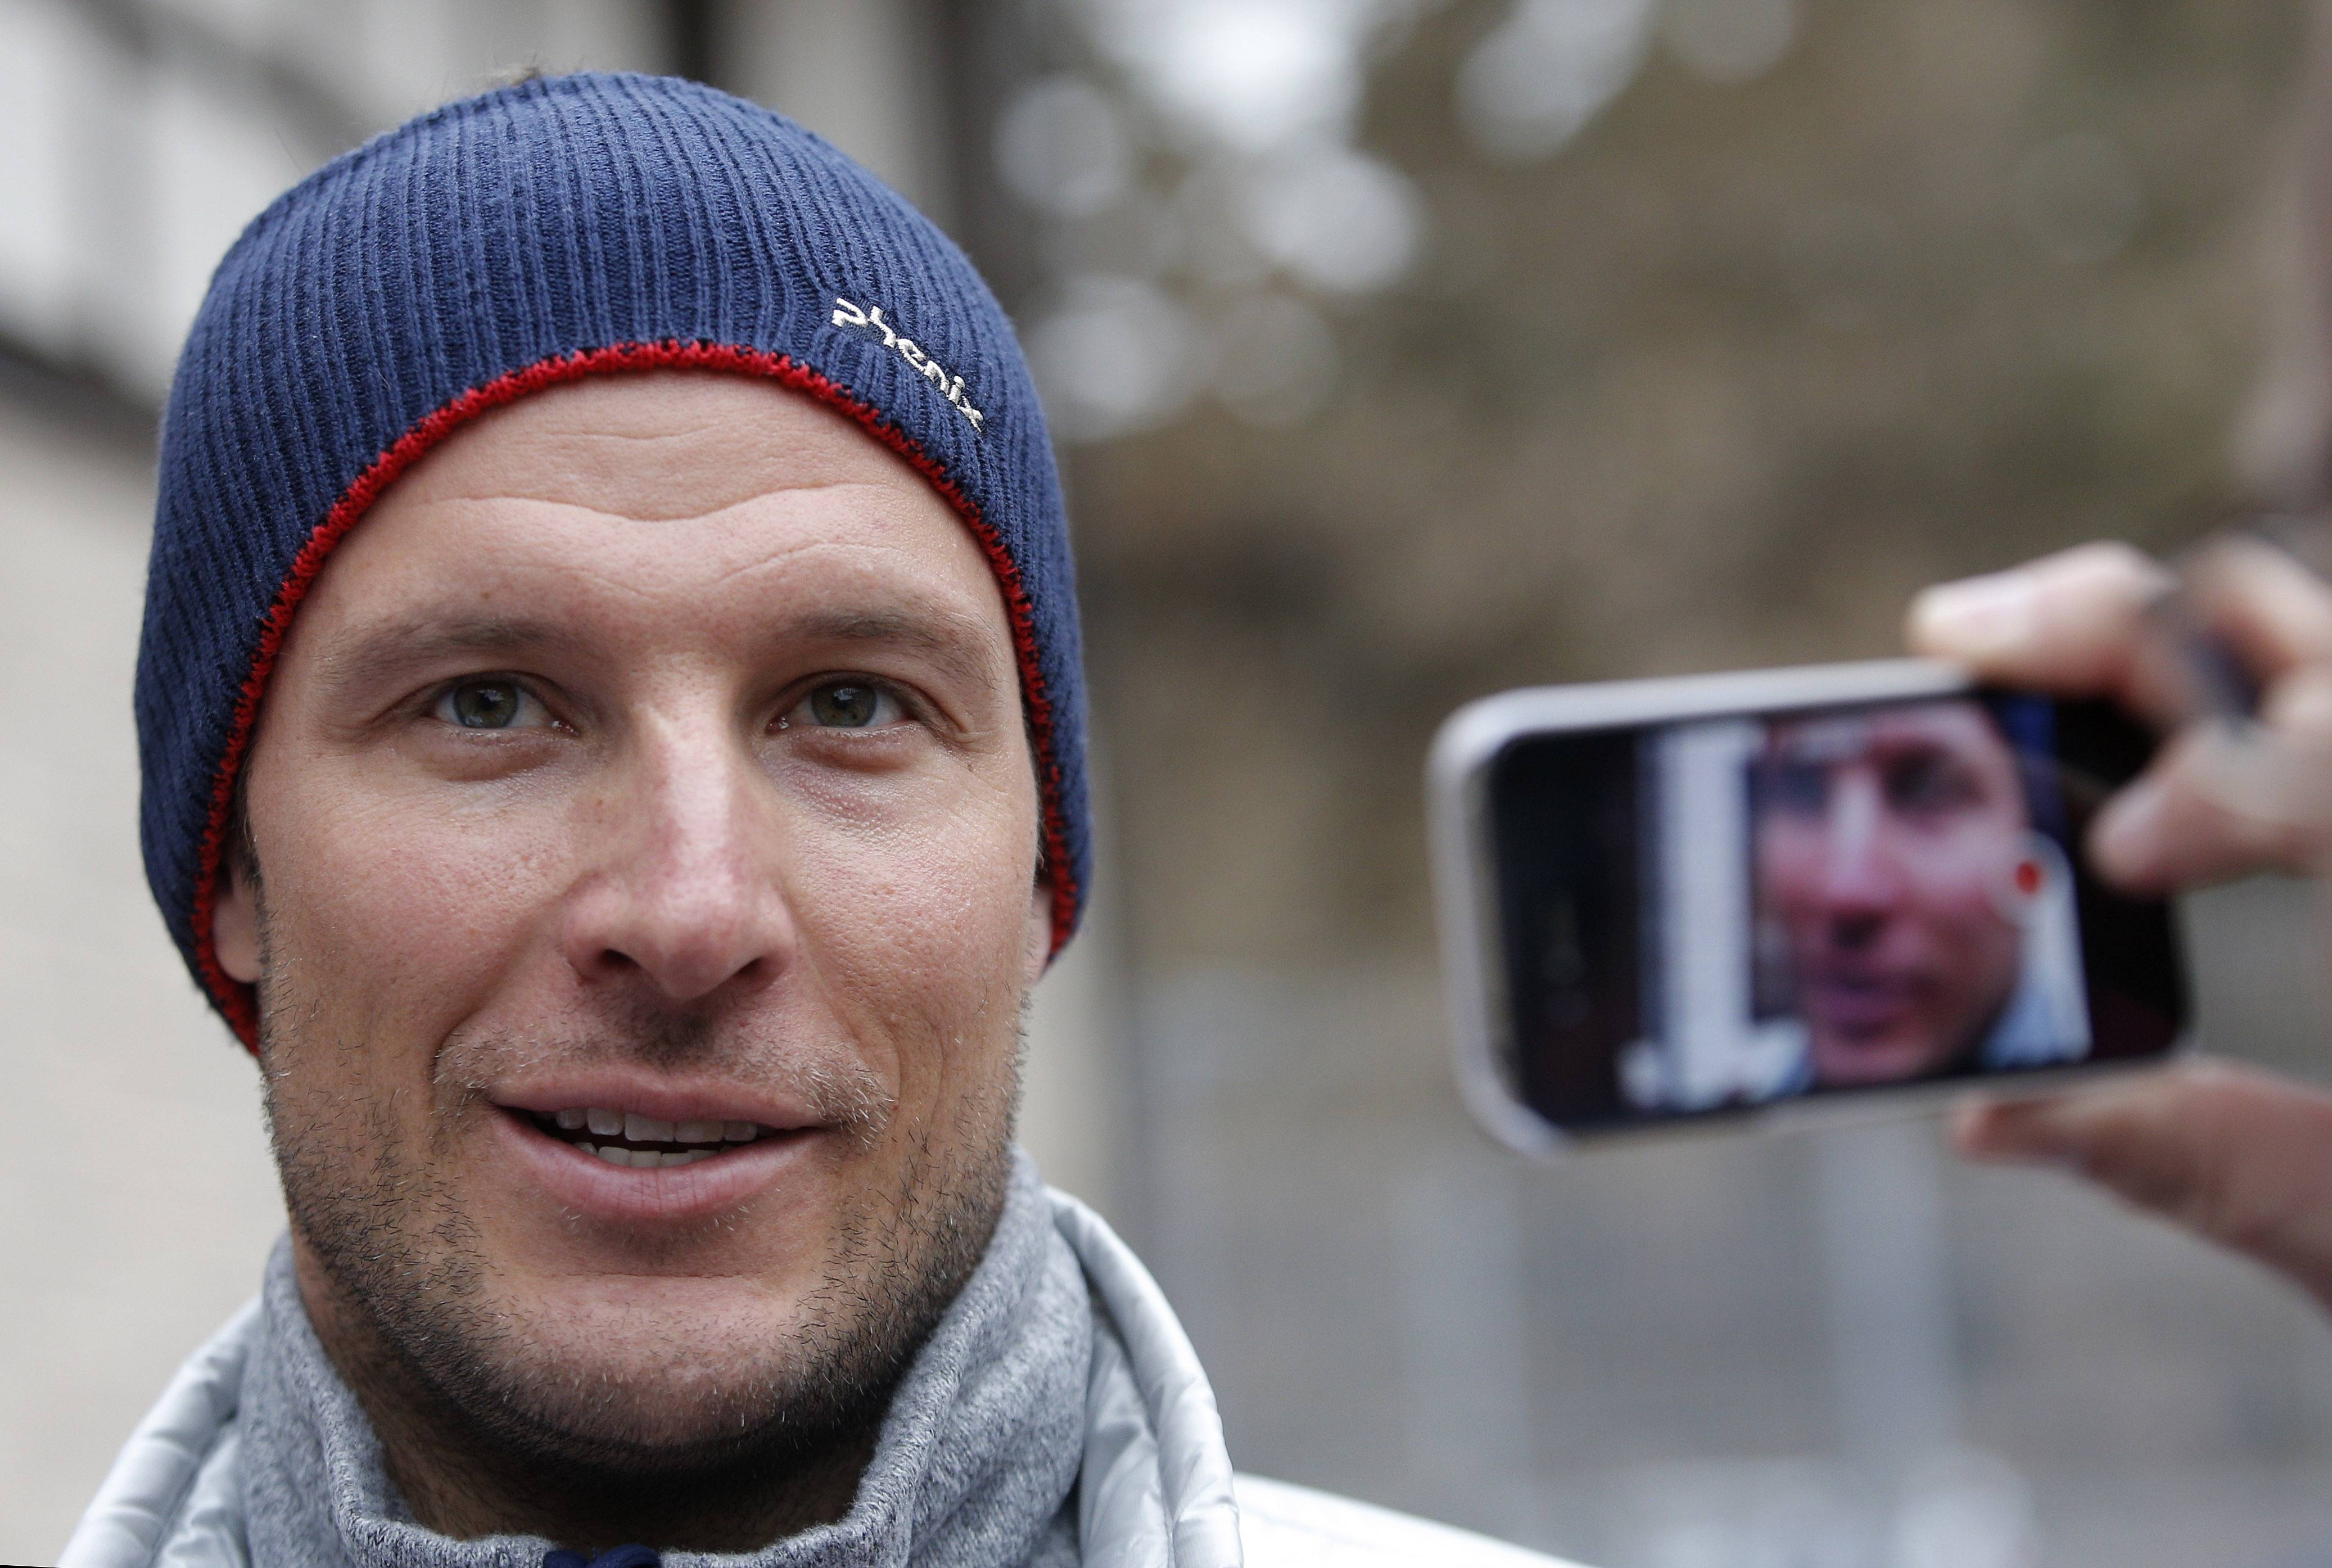 Norway's Aksel Lund Svindal addresses members of the media Monday at the Sochi 2014 Winter Olympics in Krasnaya Polyana, Russia. Svindal is leaving the Olympics because he has problems with allergies and fatigue, the Norwegian men's Alpine skiing coach said Monday.